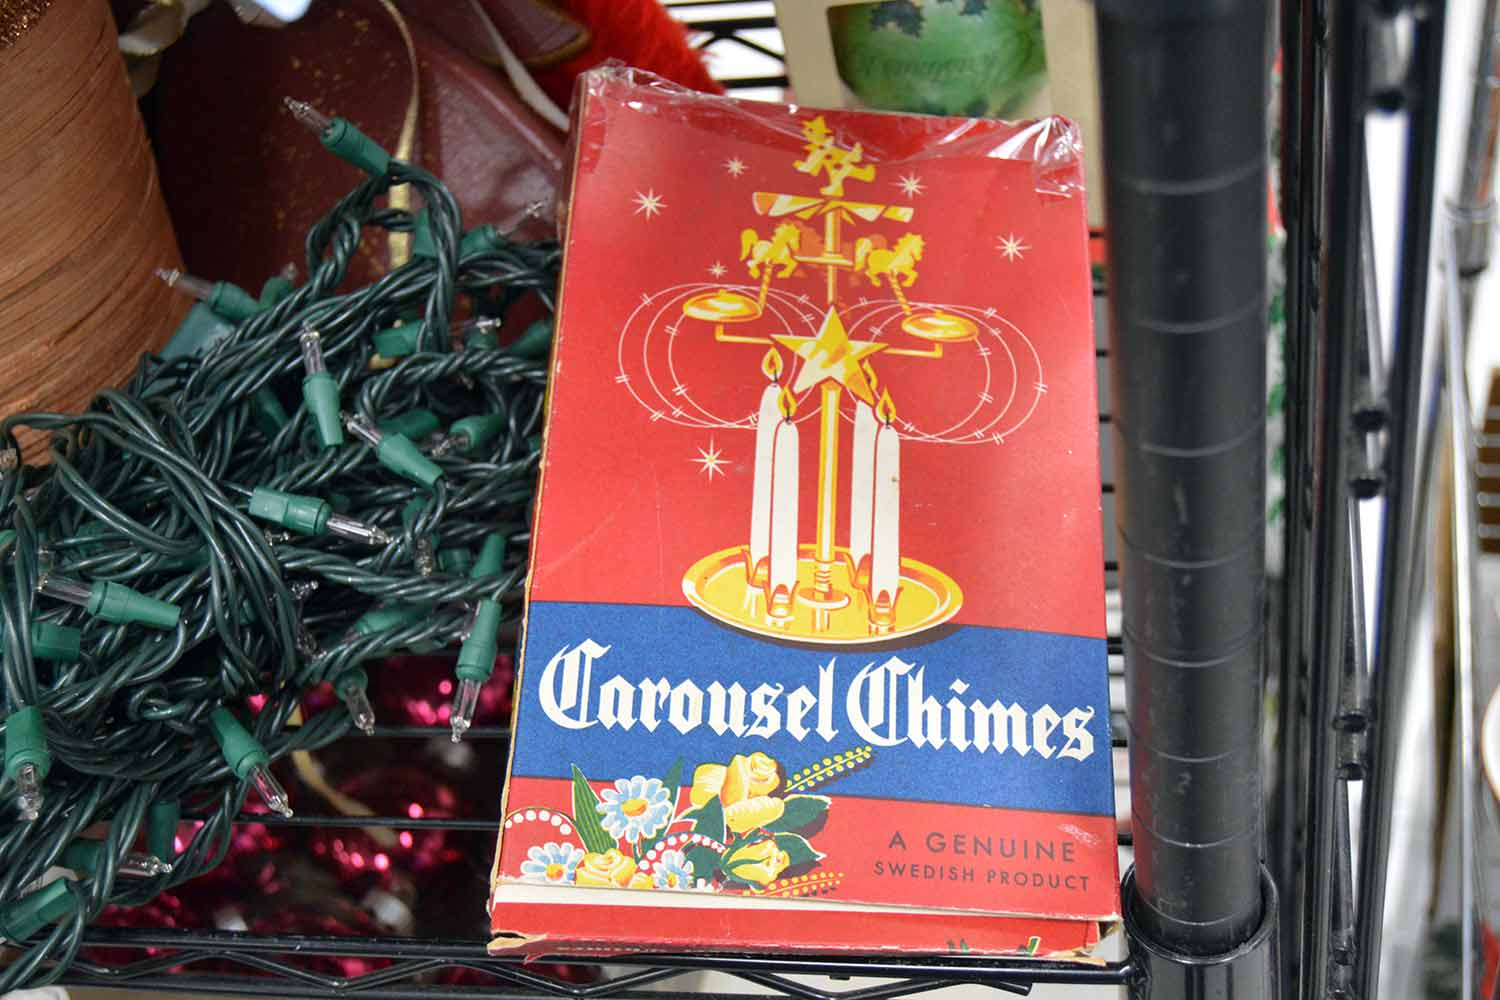 Genuine Swedish carousel chimes